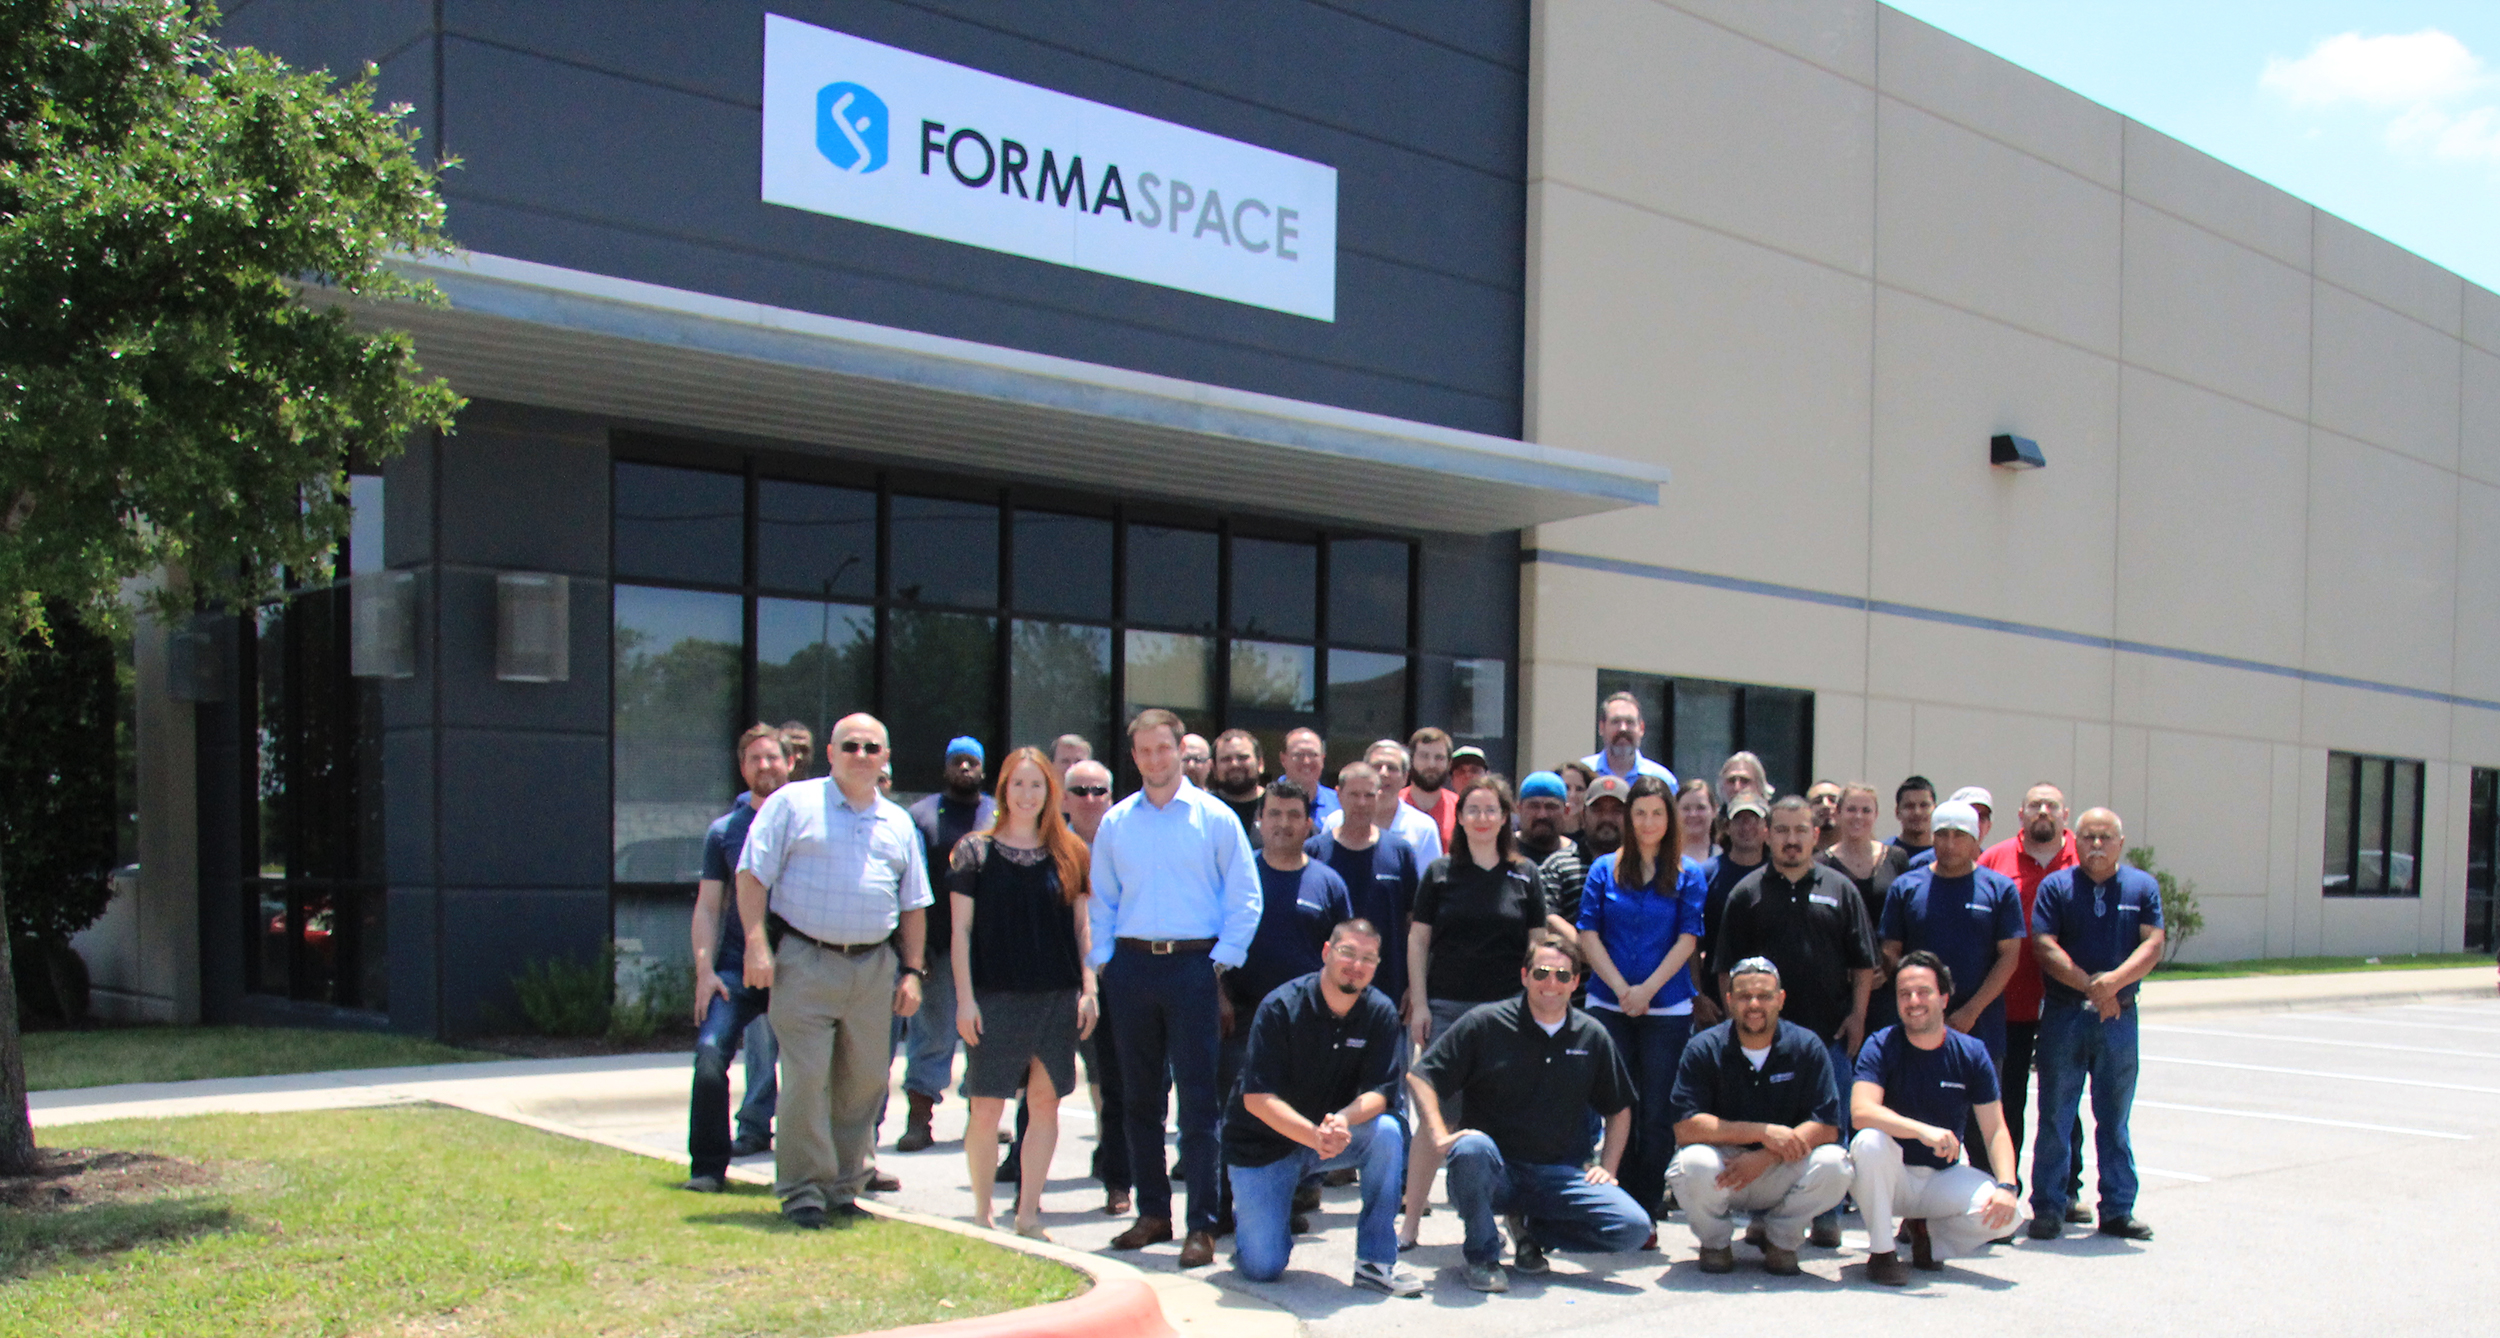 Formaspace Team Outside